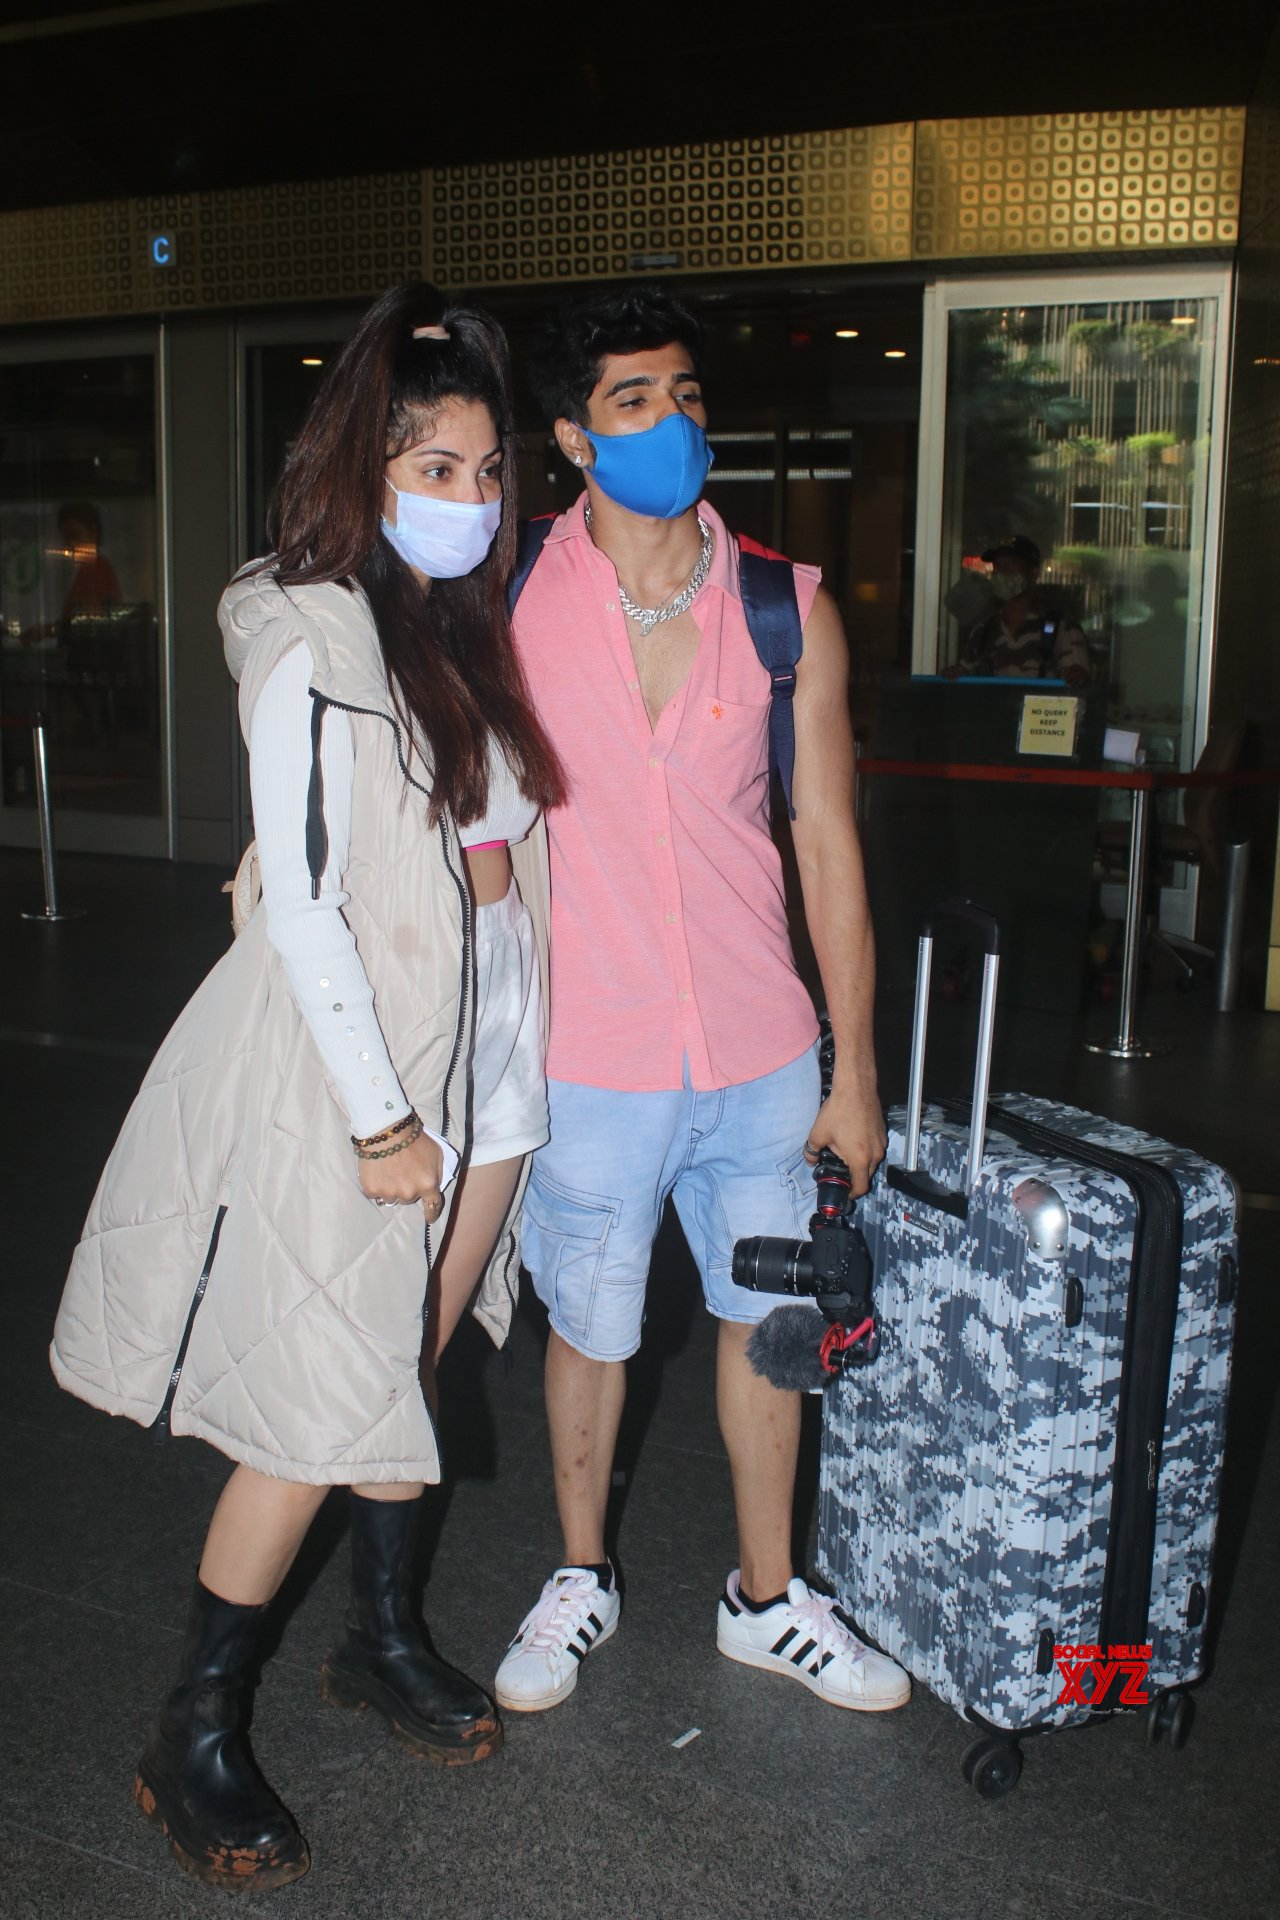 Zeeshan And Rubina Of Big Boss OTT Spotted At Airport Arrival Gallery